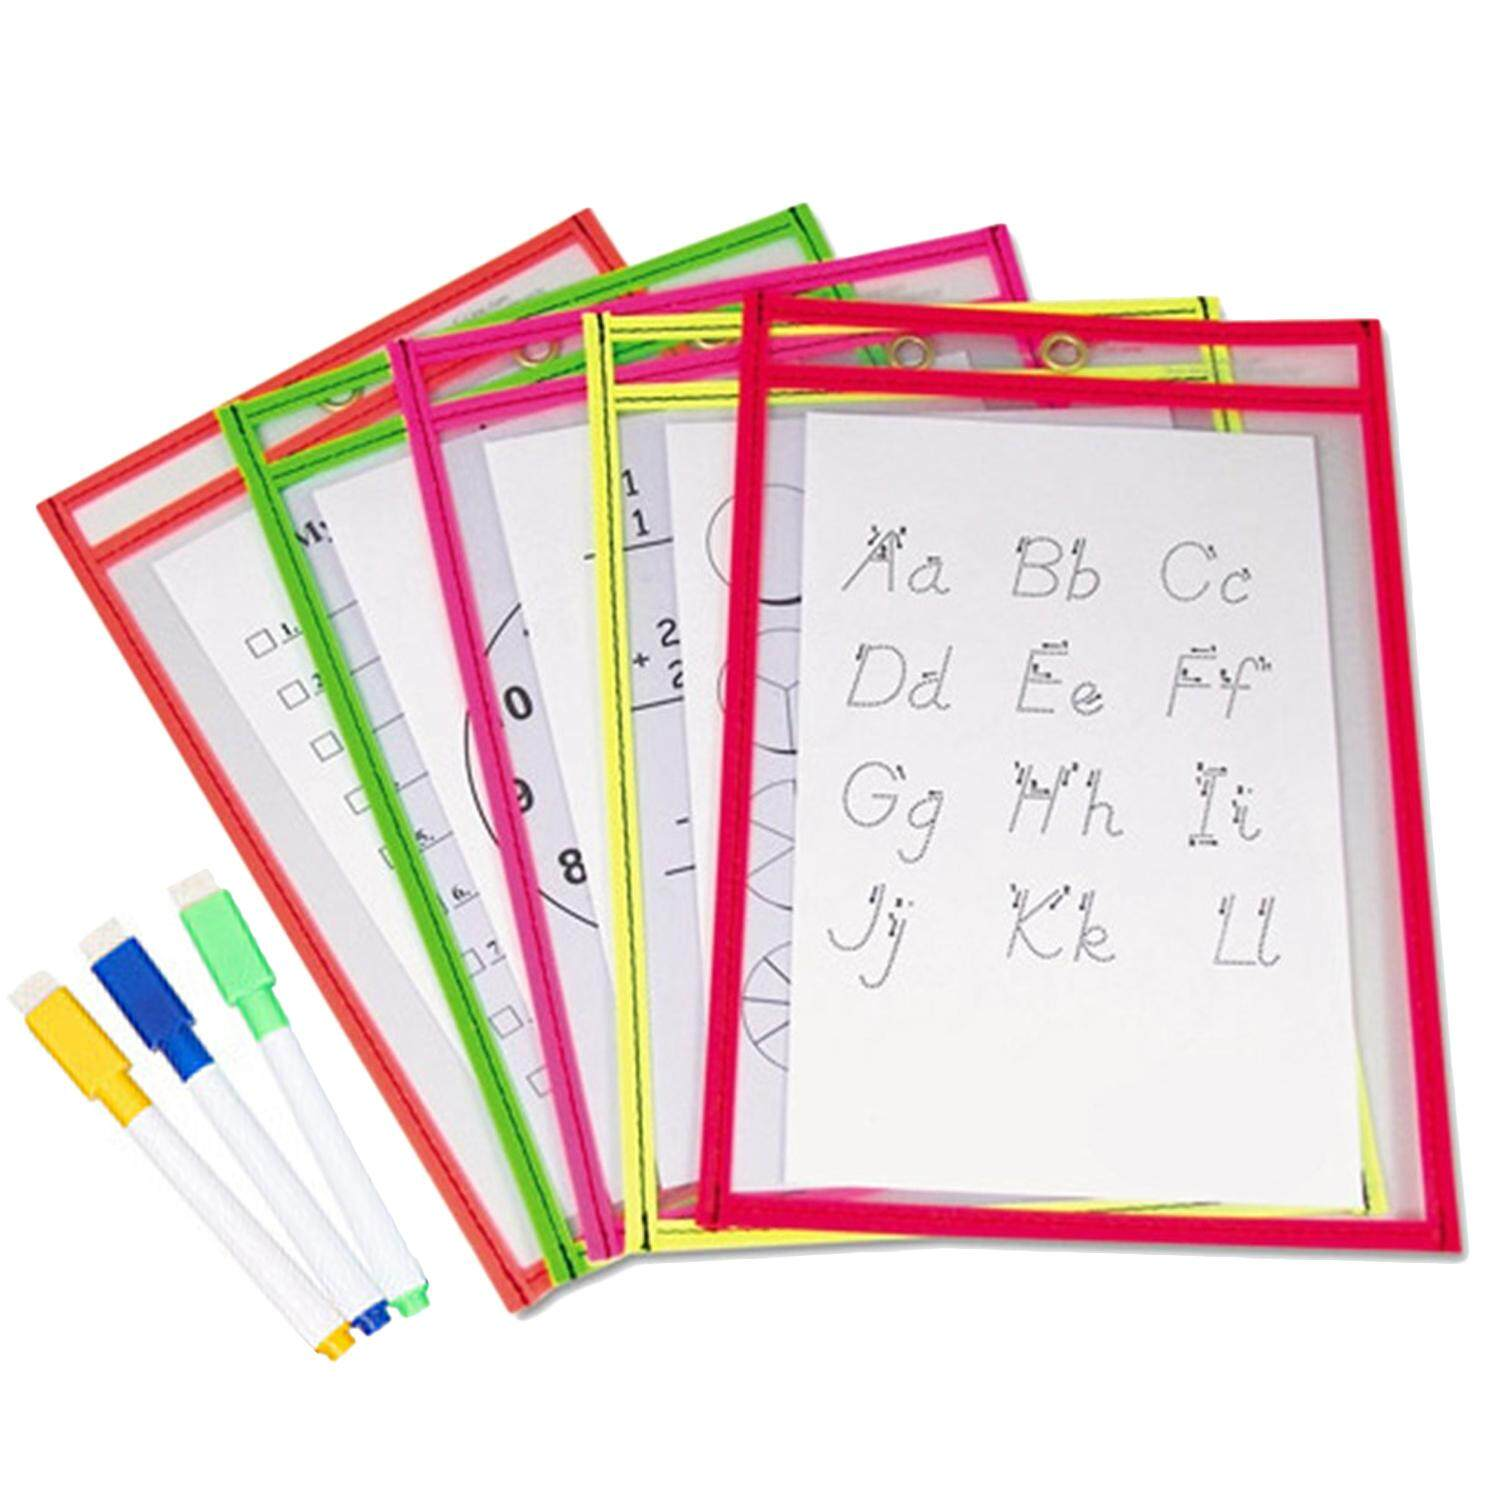 10pcs Reusable Transparent Clear Pvc Dry Erase Pockets Sleeves + 3pcs Pens For Office Learning Classroom Organization Teaching Supplies Random Color By Jelly Store.